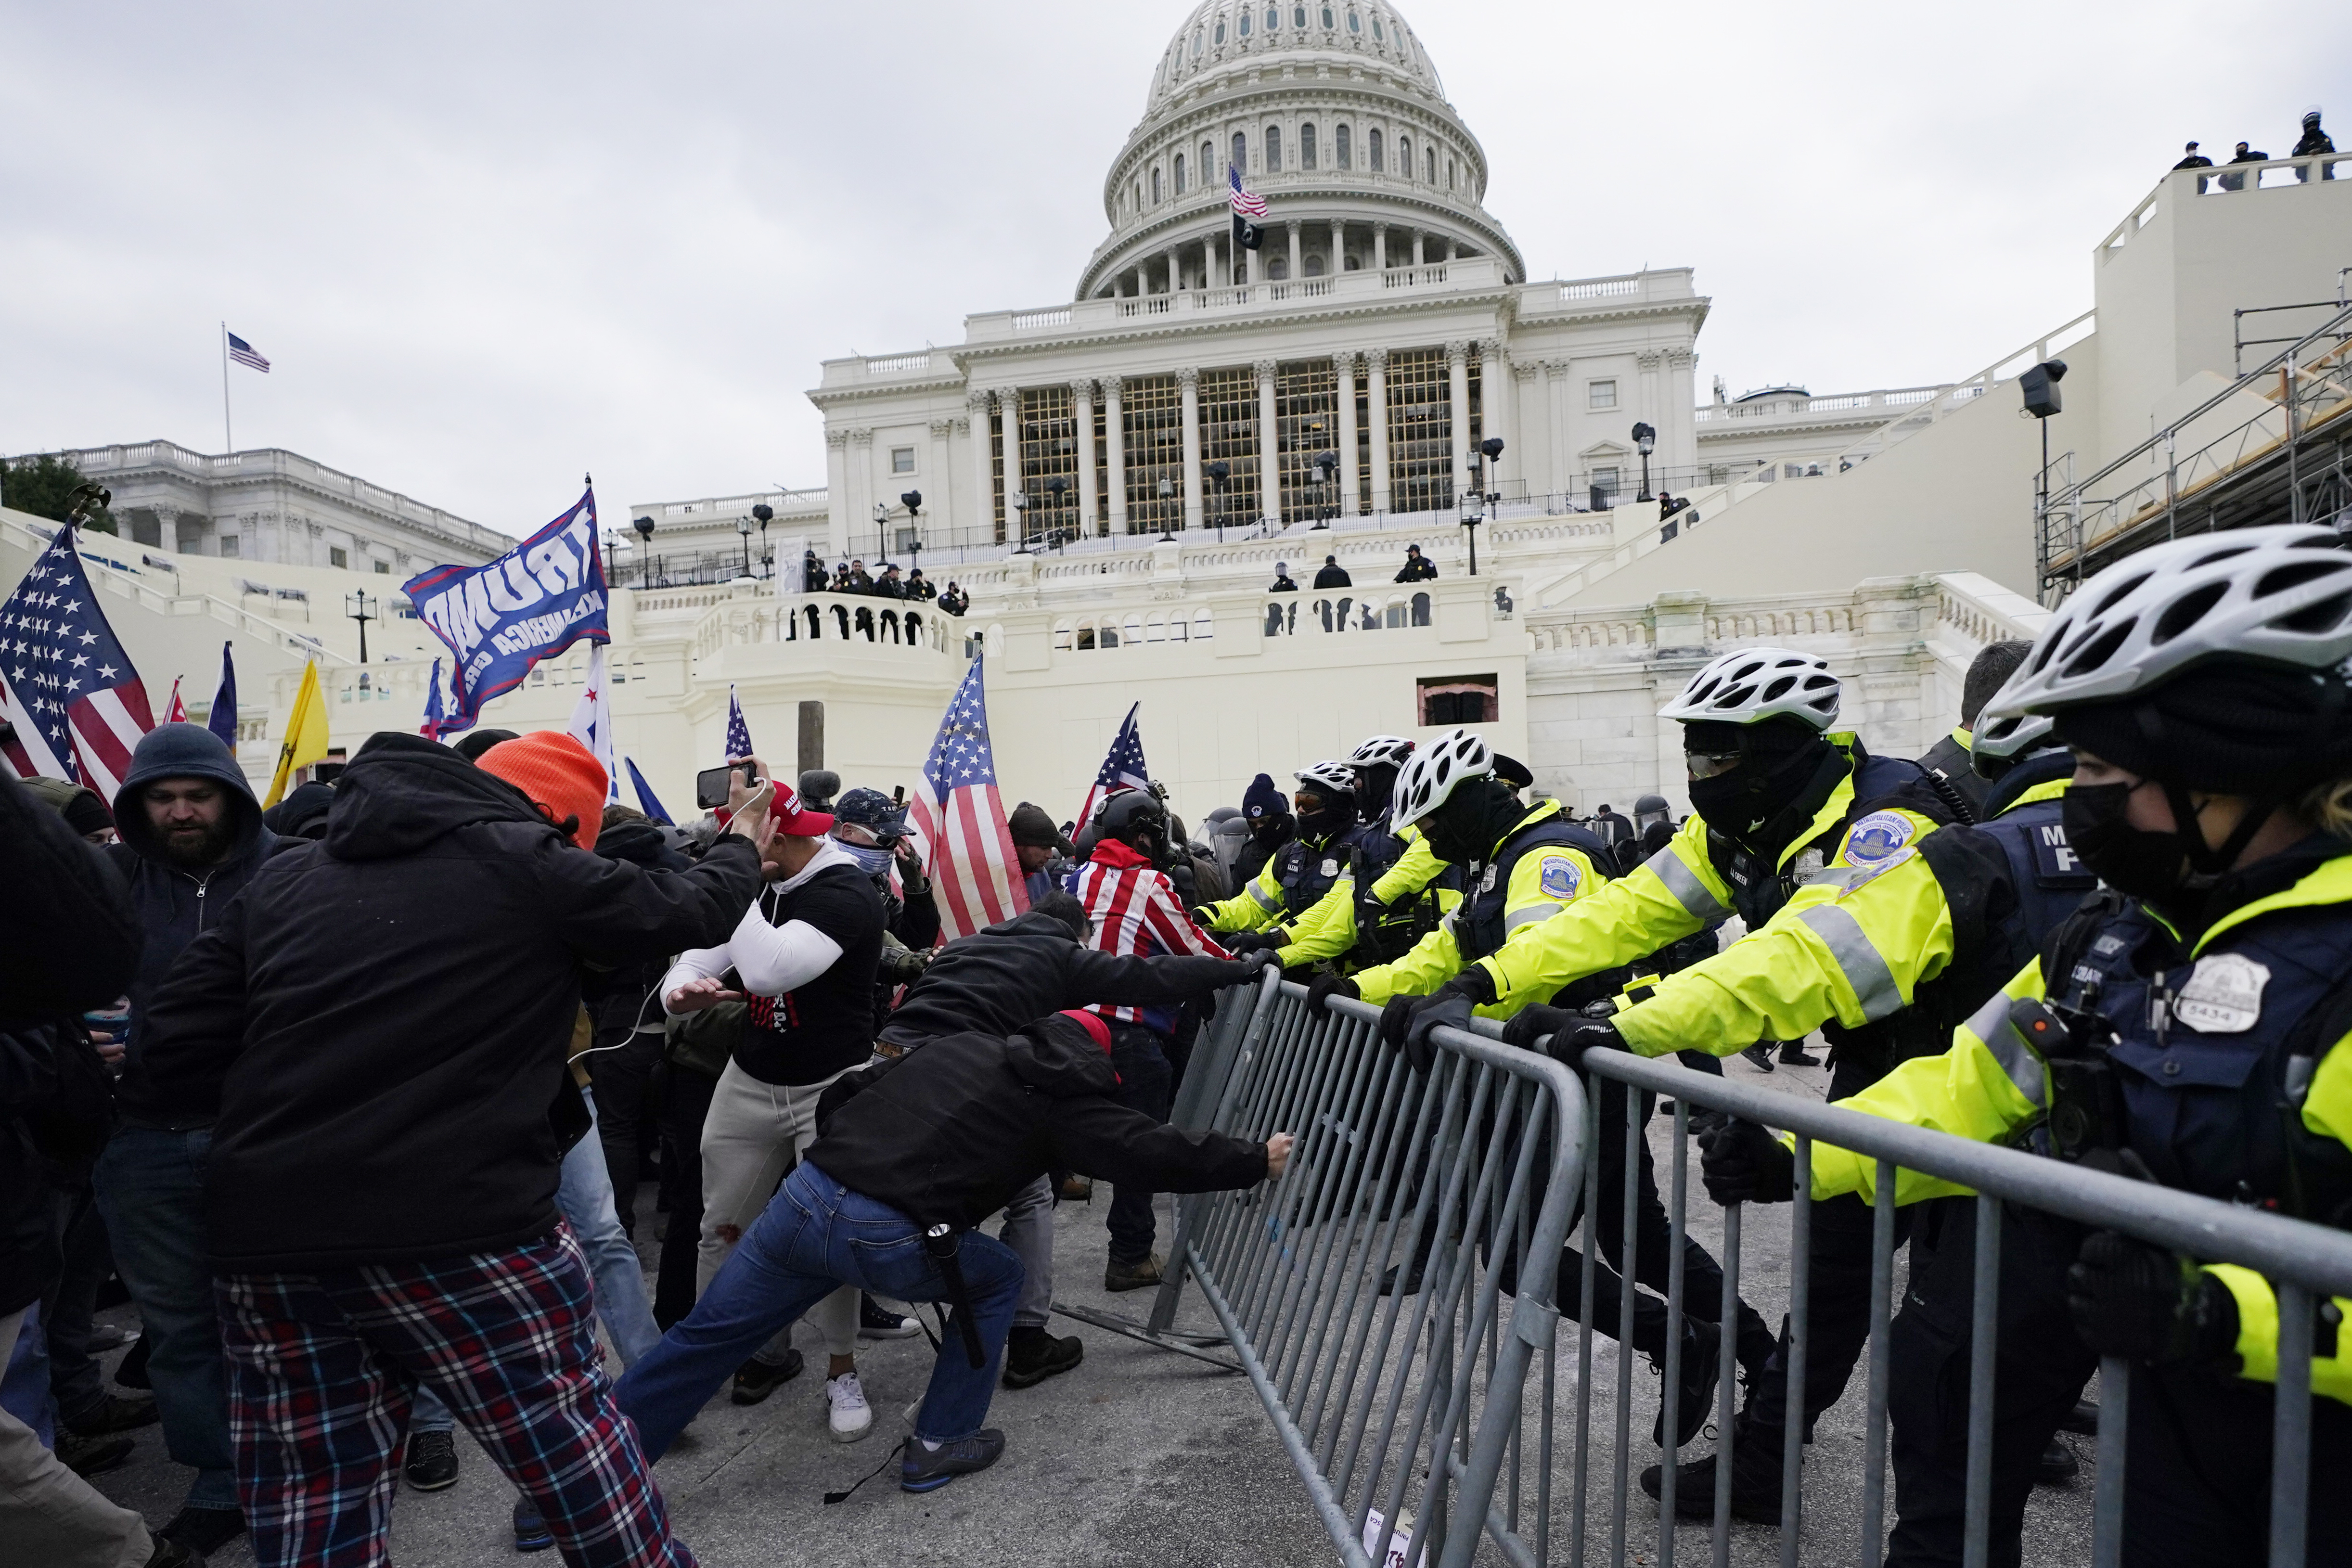 Supporters loyal to then-President Donald Trump, try to break through a police barrier at the Capitol in Washington on Jan 6, 2021.